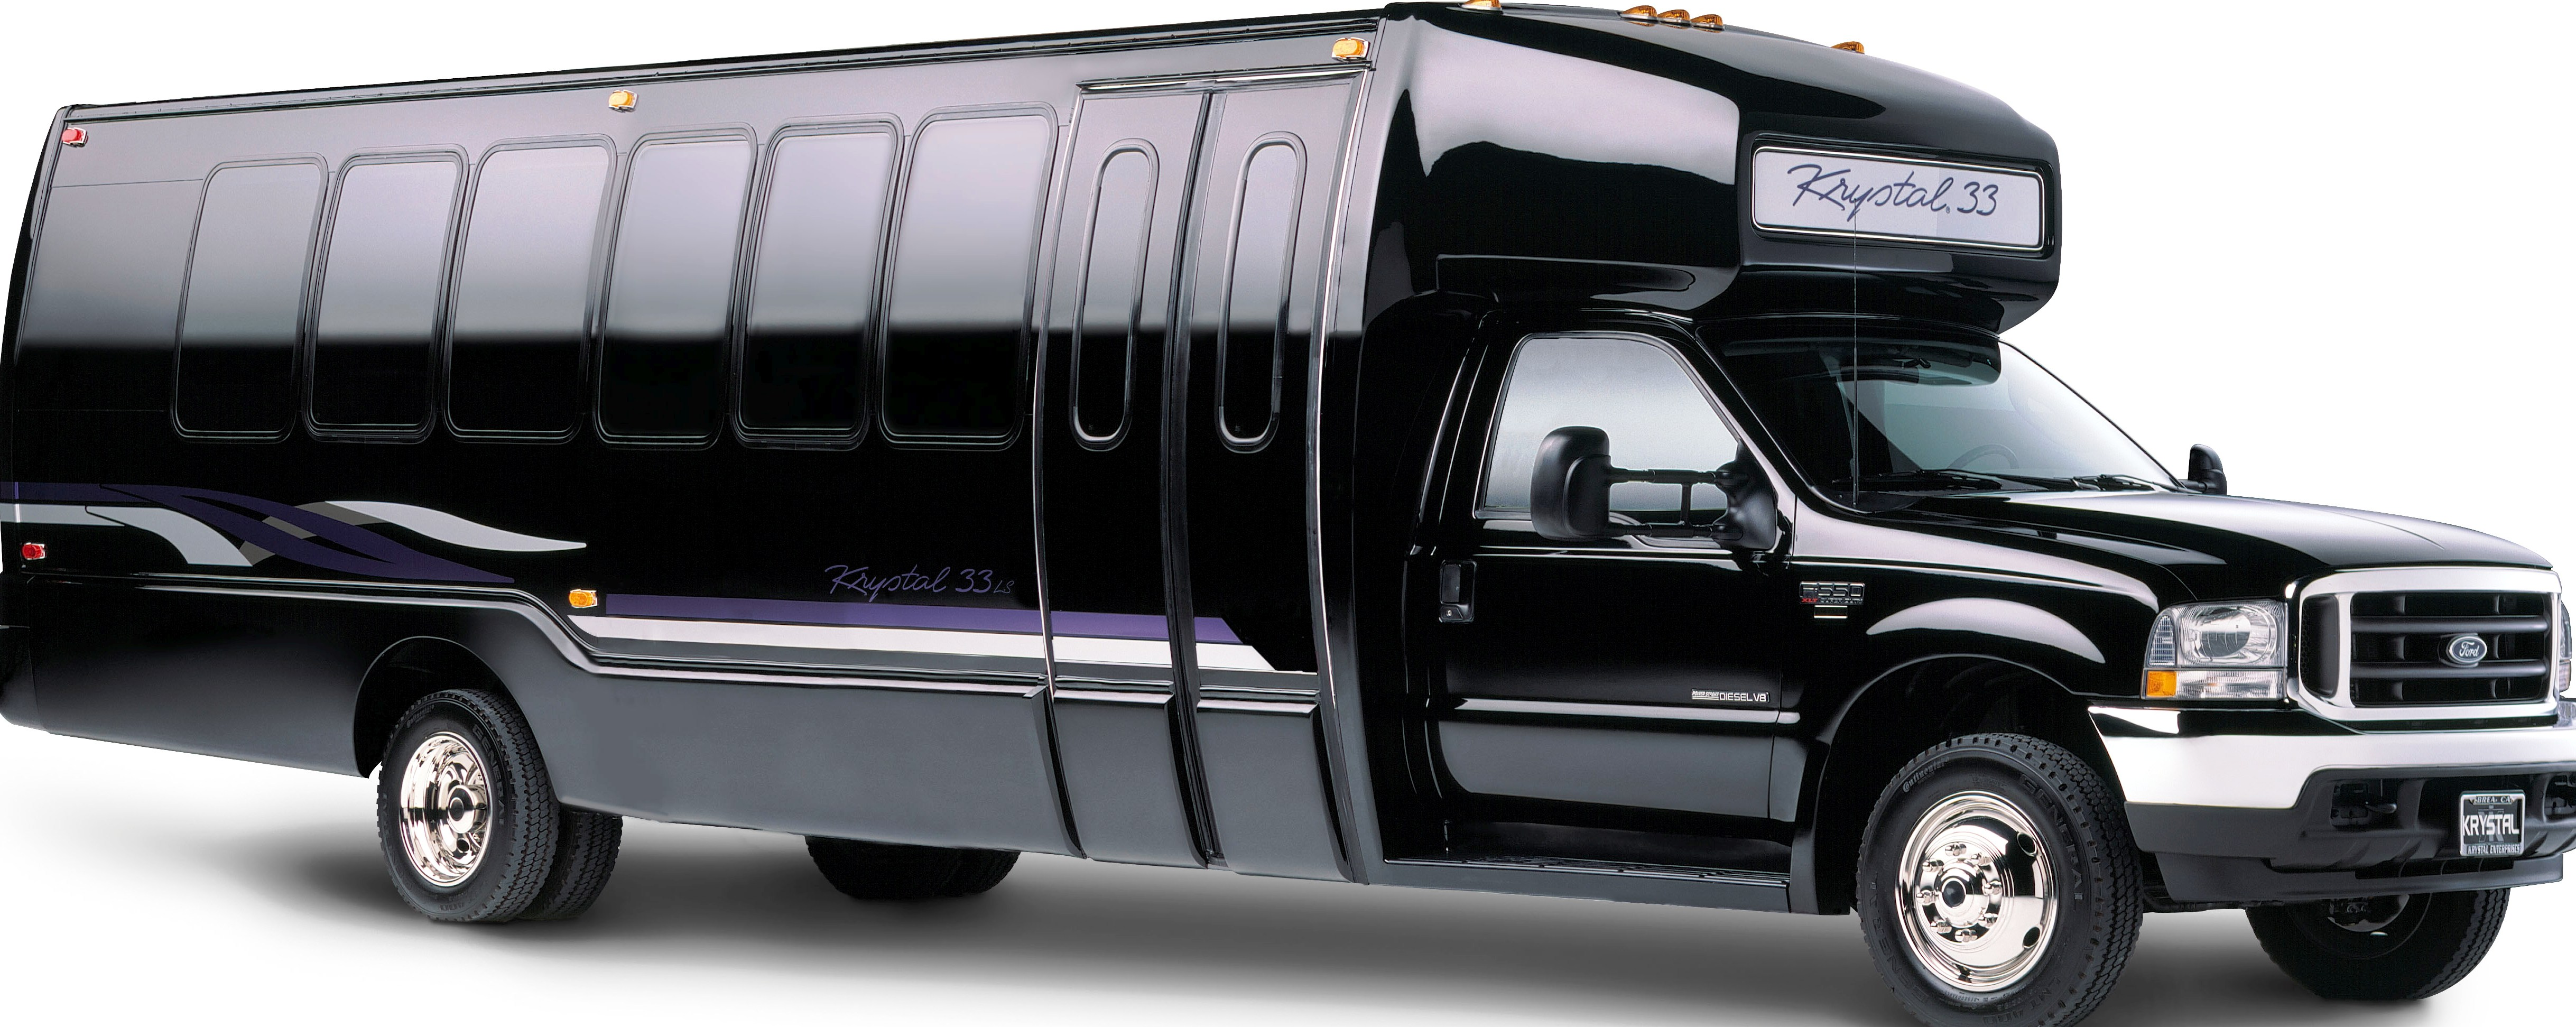 Sacramento Car Rental >> Sacramento Party Bus Price Quotes | Land Yacht Limos